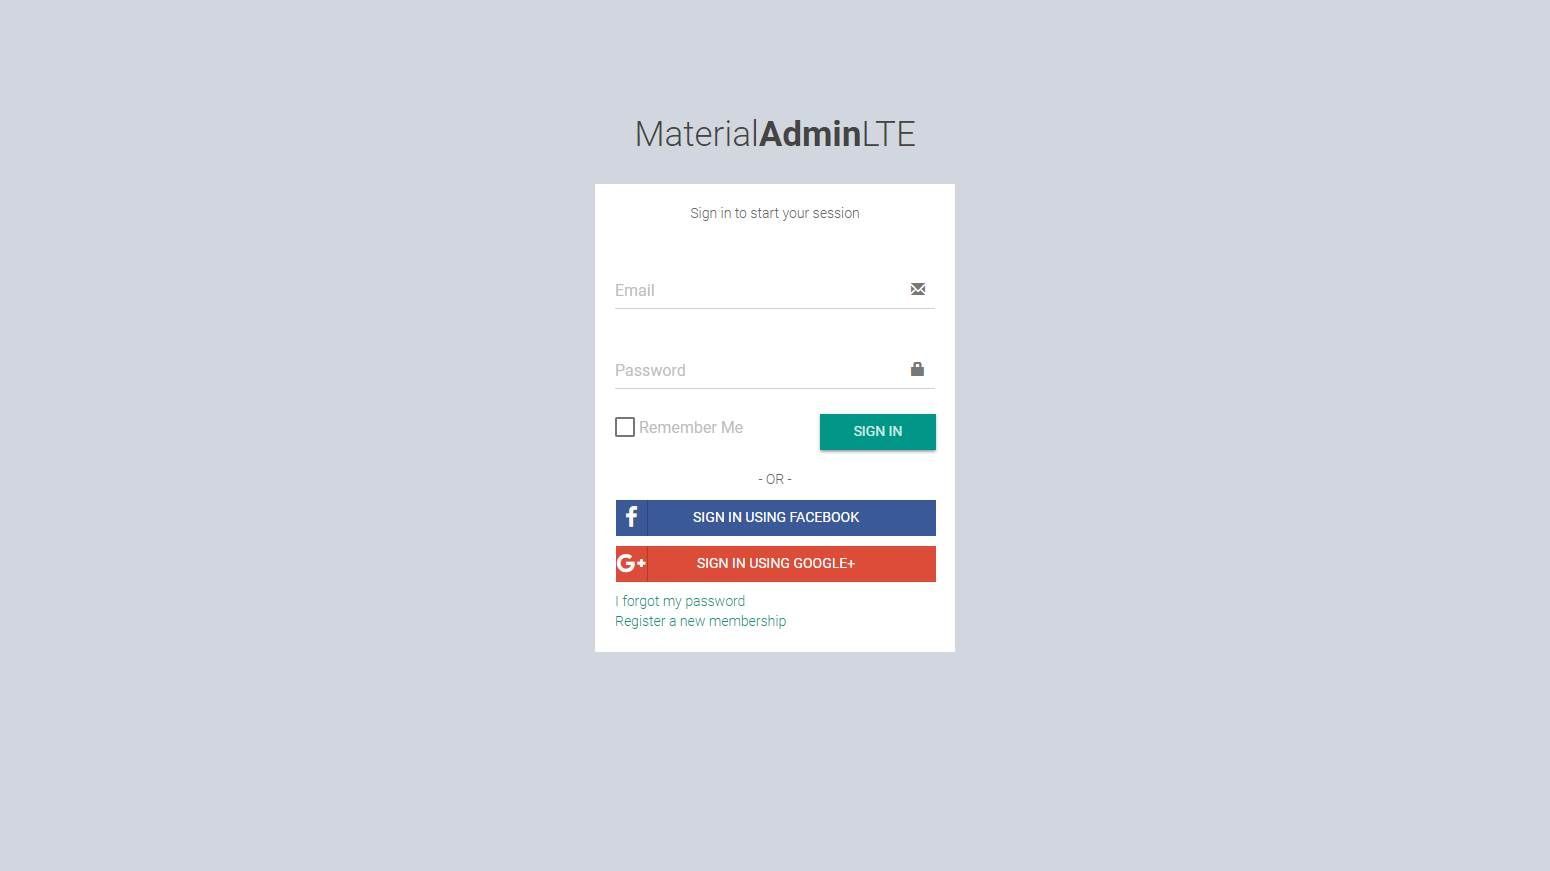 MaterialAdminLTE 2: The Material Version of AdminLTE | Best Free